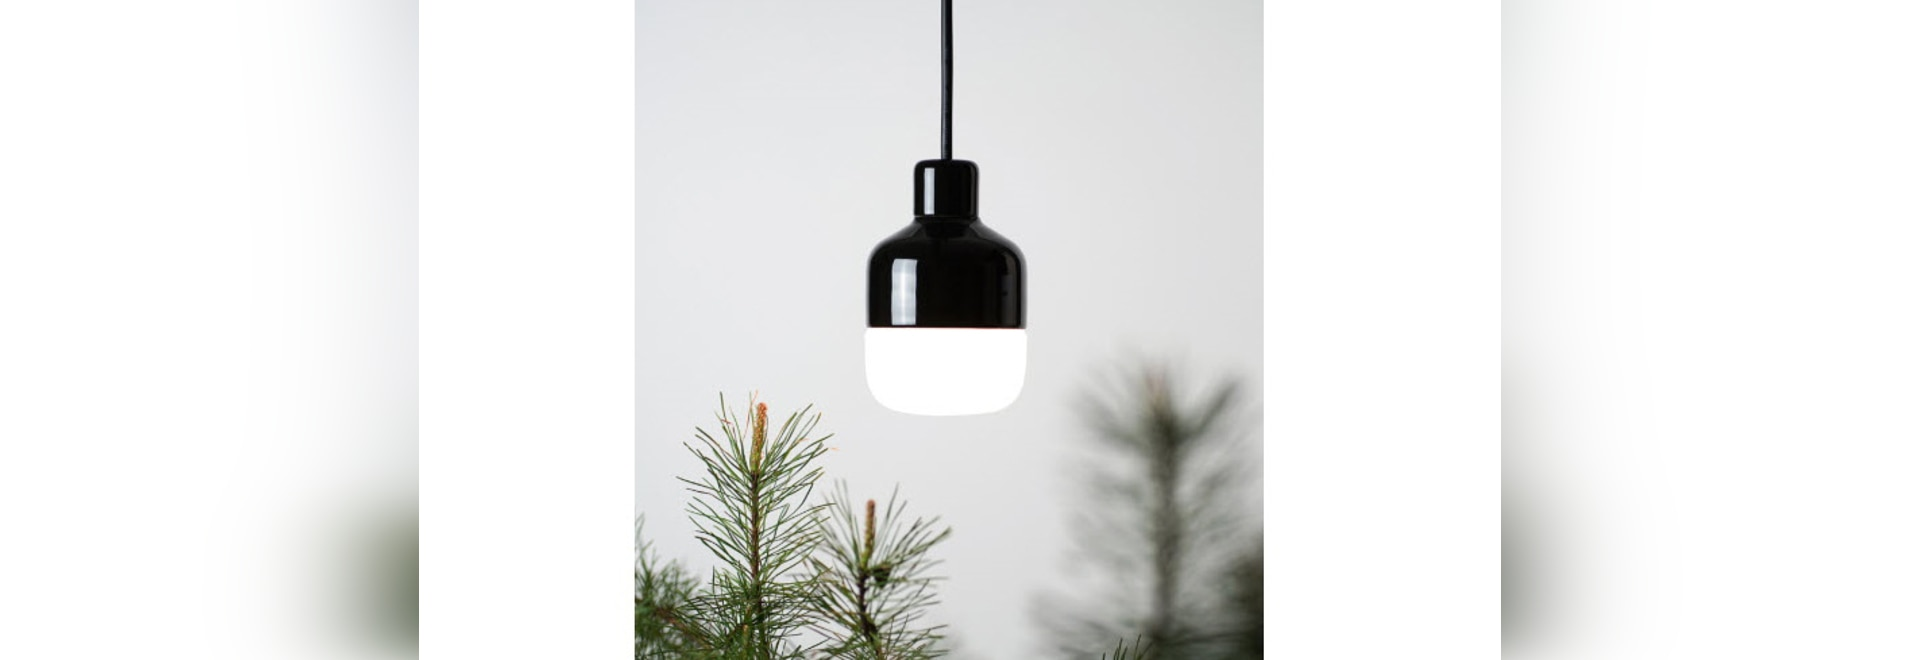 a black high gloss glazed weatherproof porcelain luminaire for outdoor use